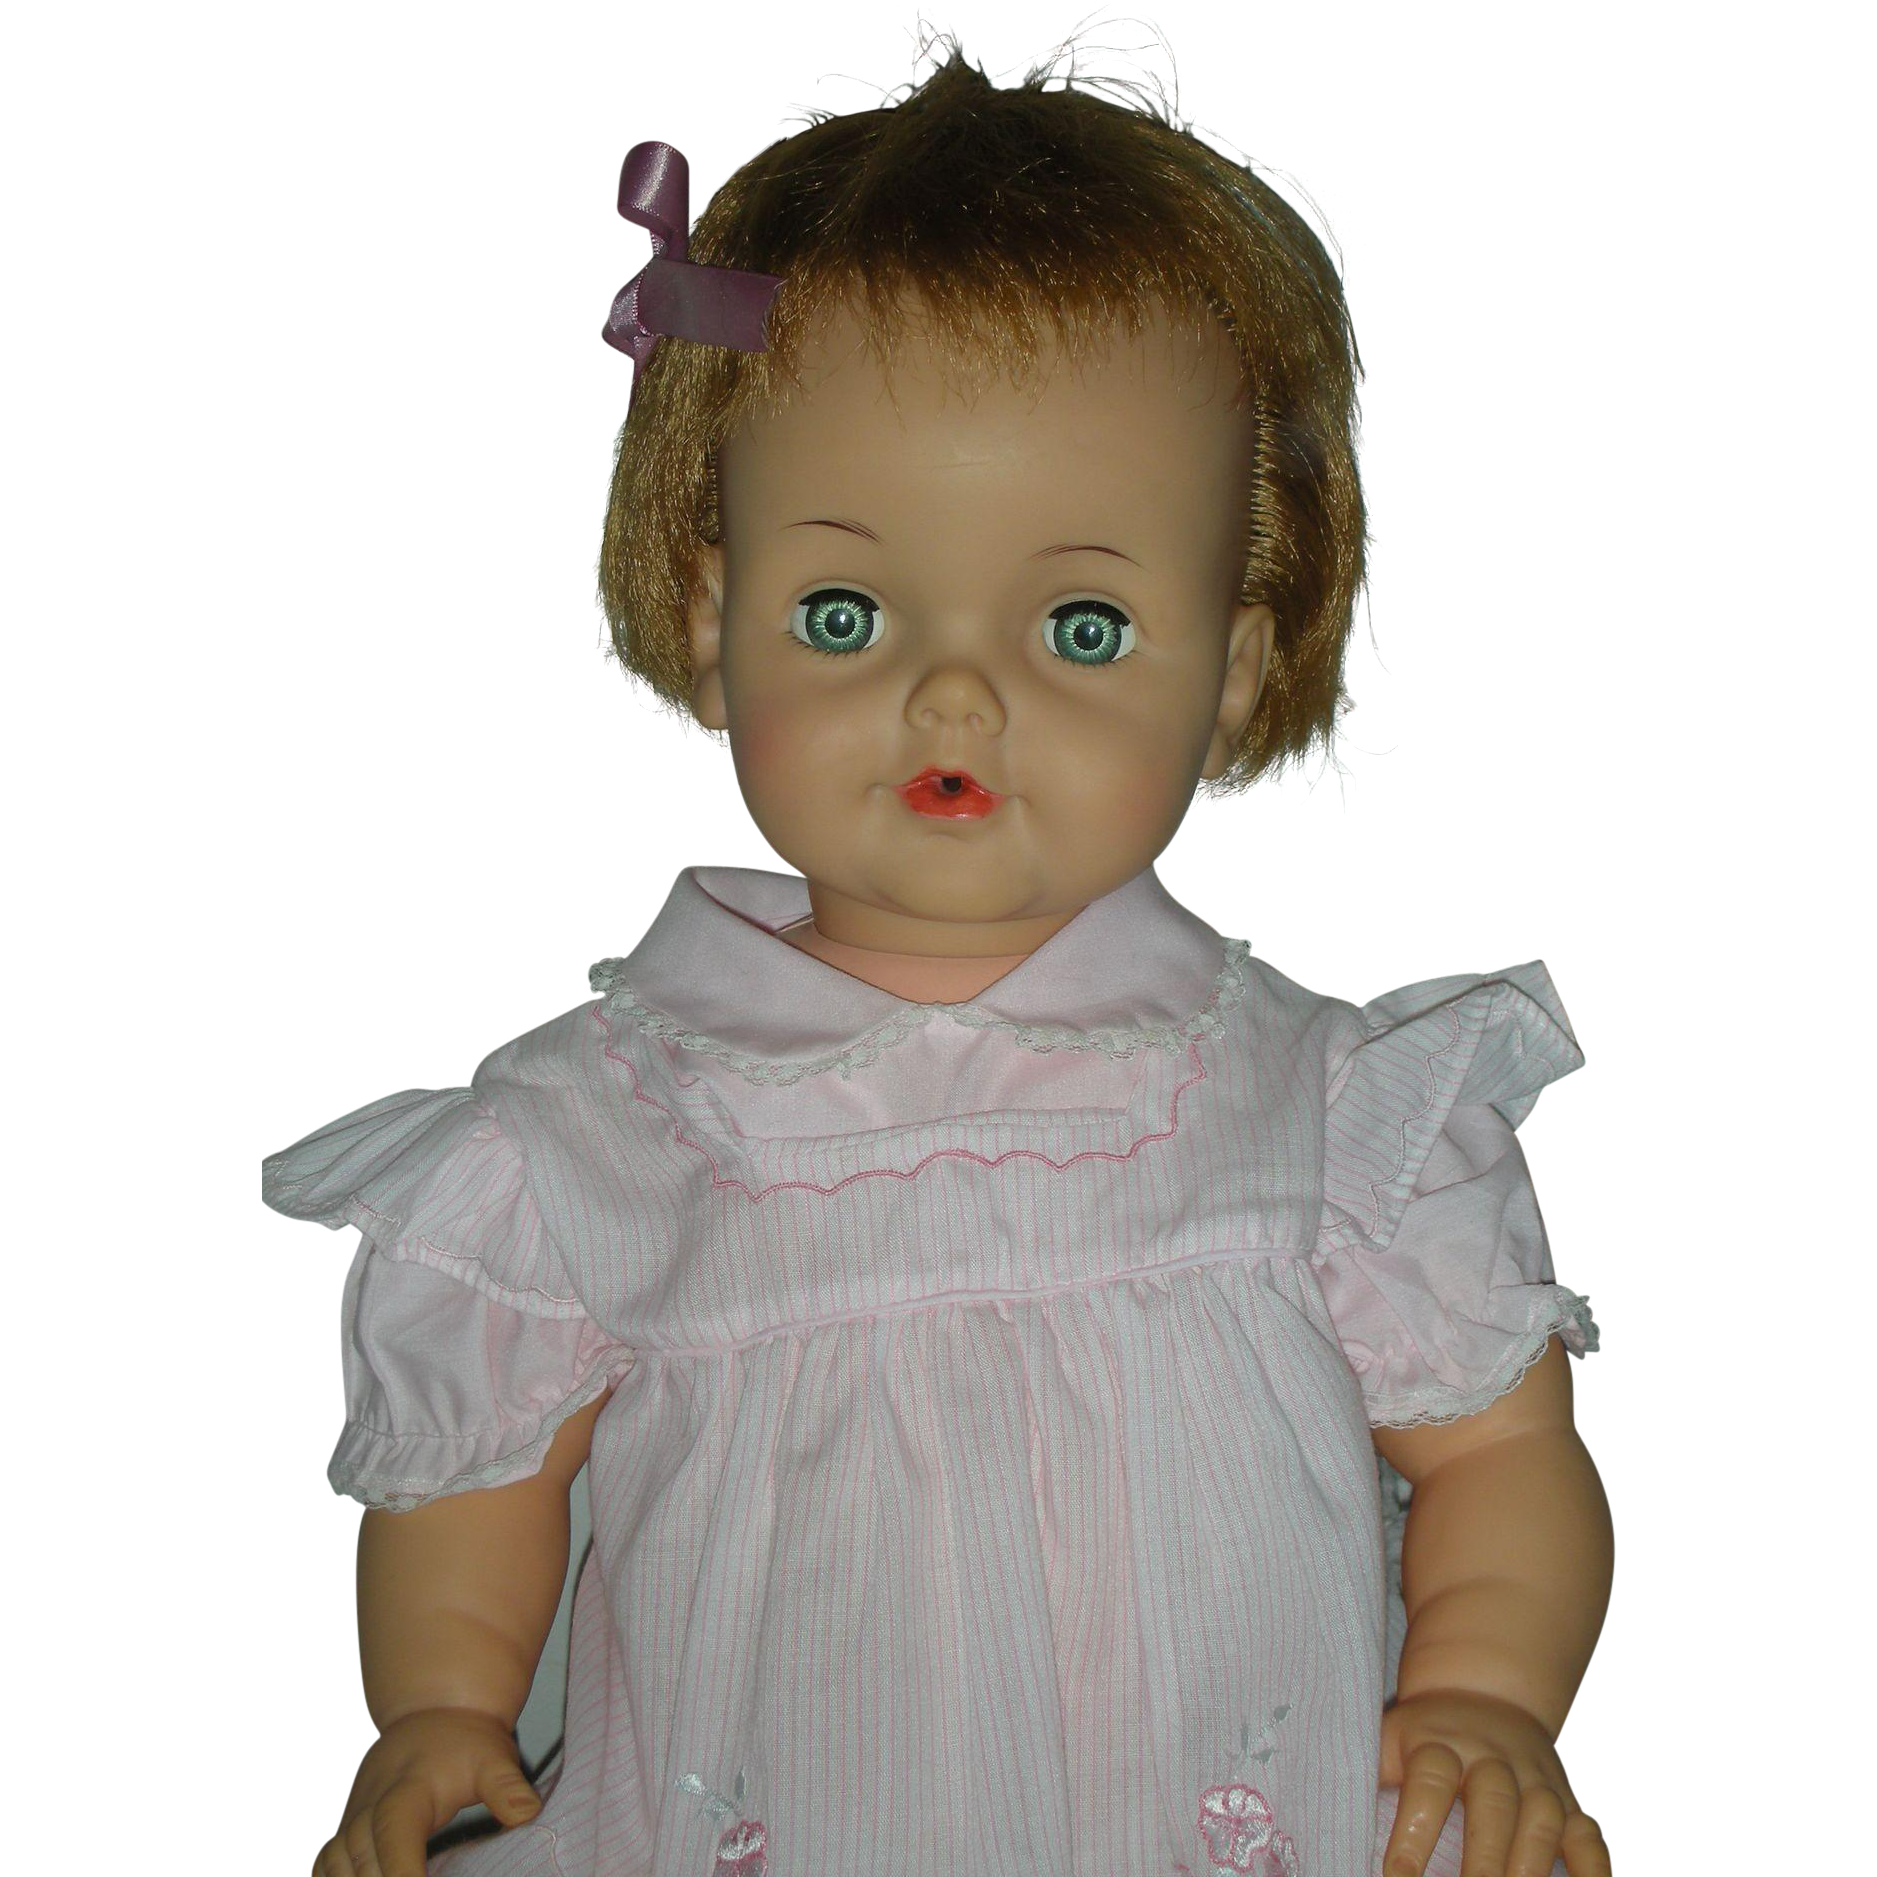 Vintage Ideal Betsy Wetsy Doll Rare Large Playpal Size 24 inches